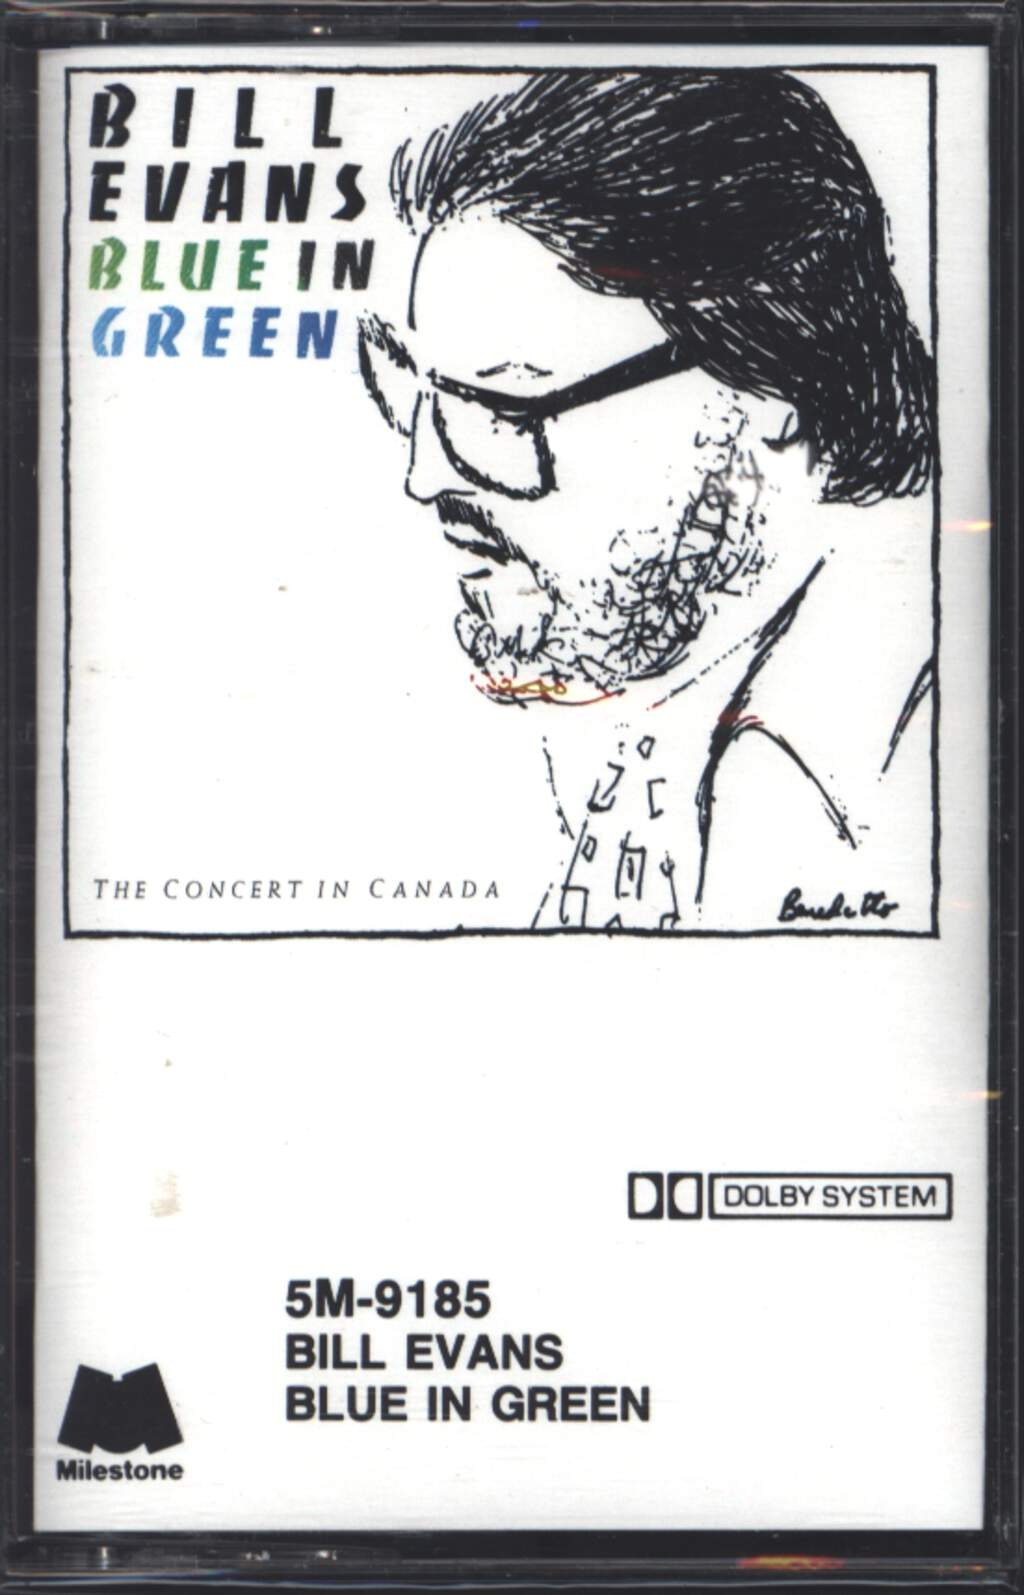 Bill Evans: Blue In Green - The Concert In Canada, Compact Cassette